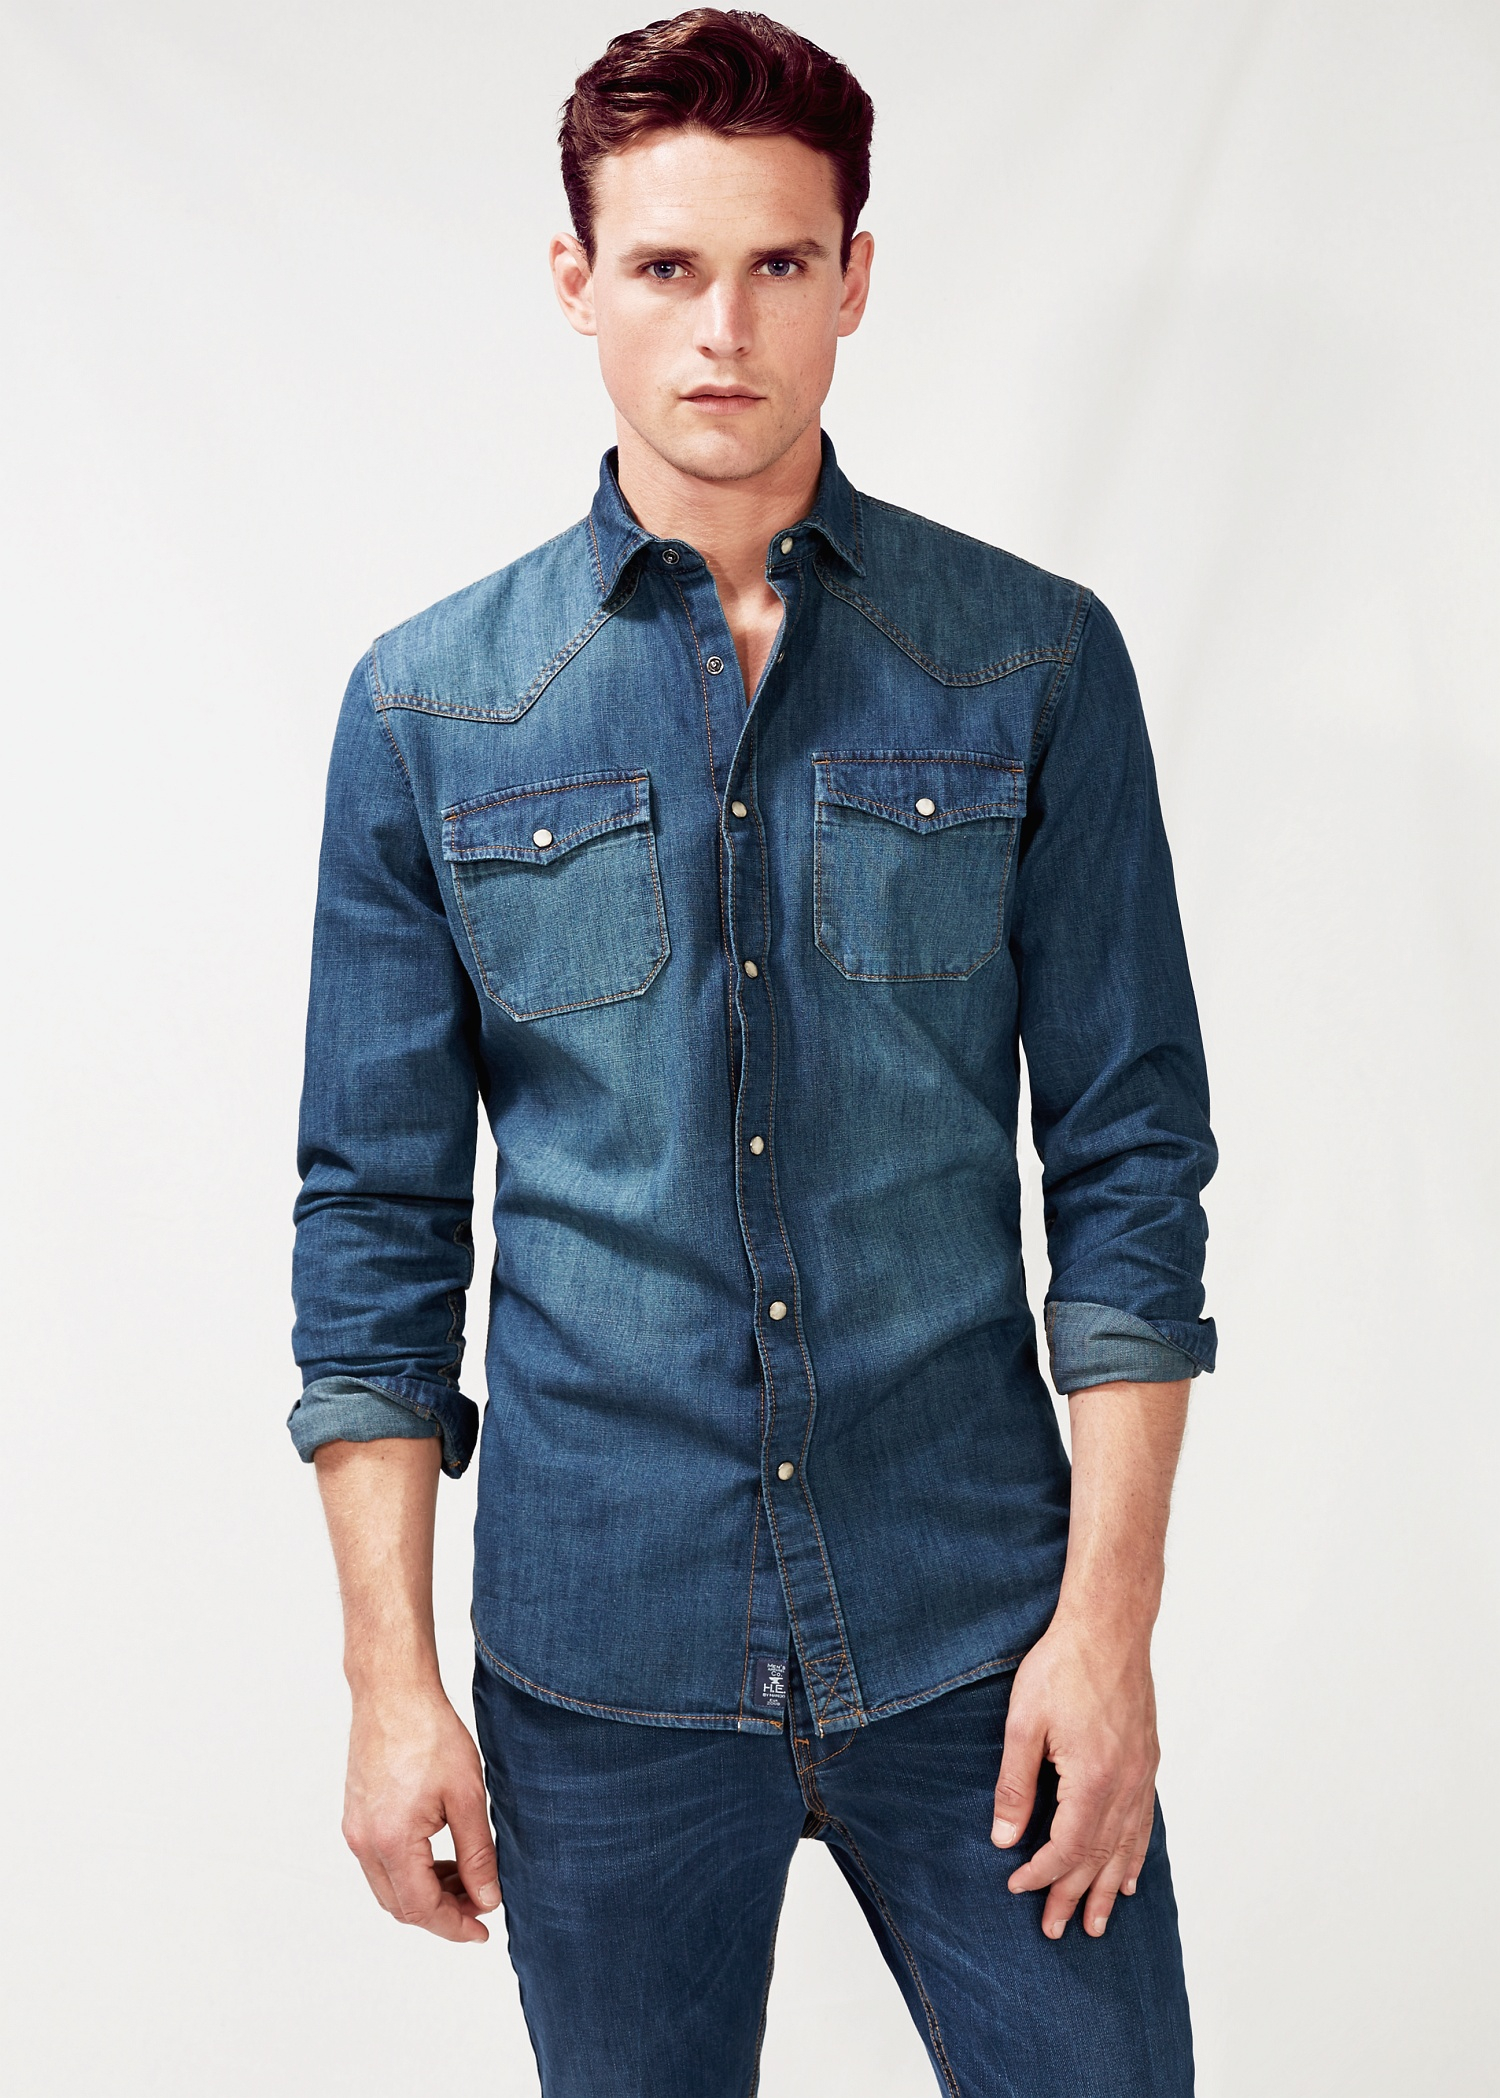 Men's Denim Shirts Step up your style and always look good in this season's failsafe denim shirt. Available in a range of washes and collar styles including button-down collar, this % cotton shirt looks good done up or layered over a plain tee.